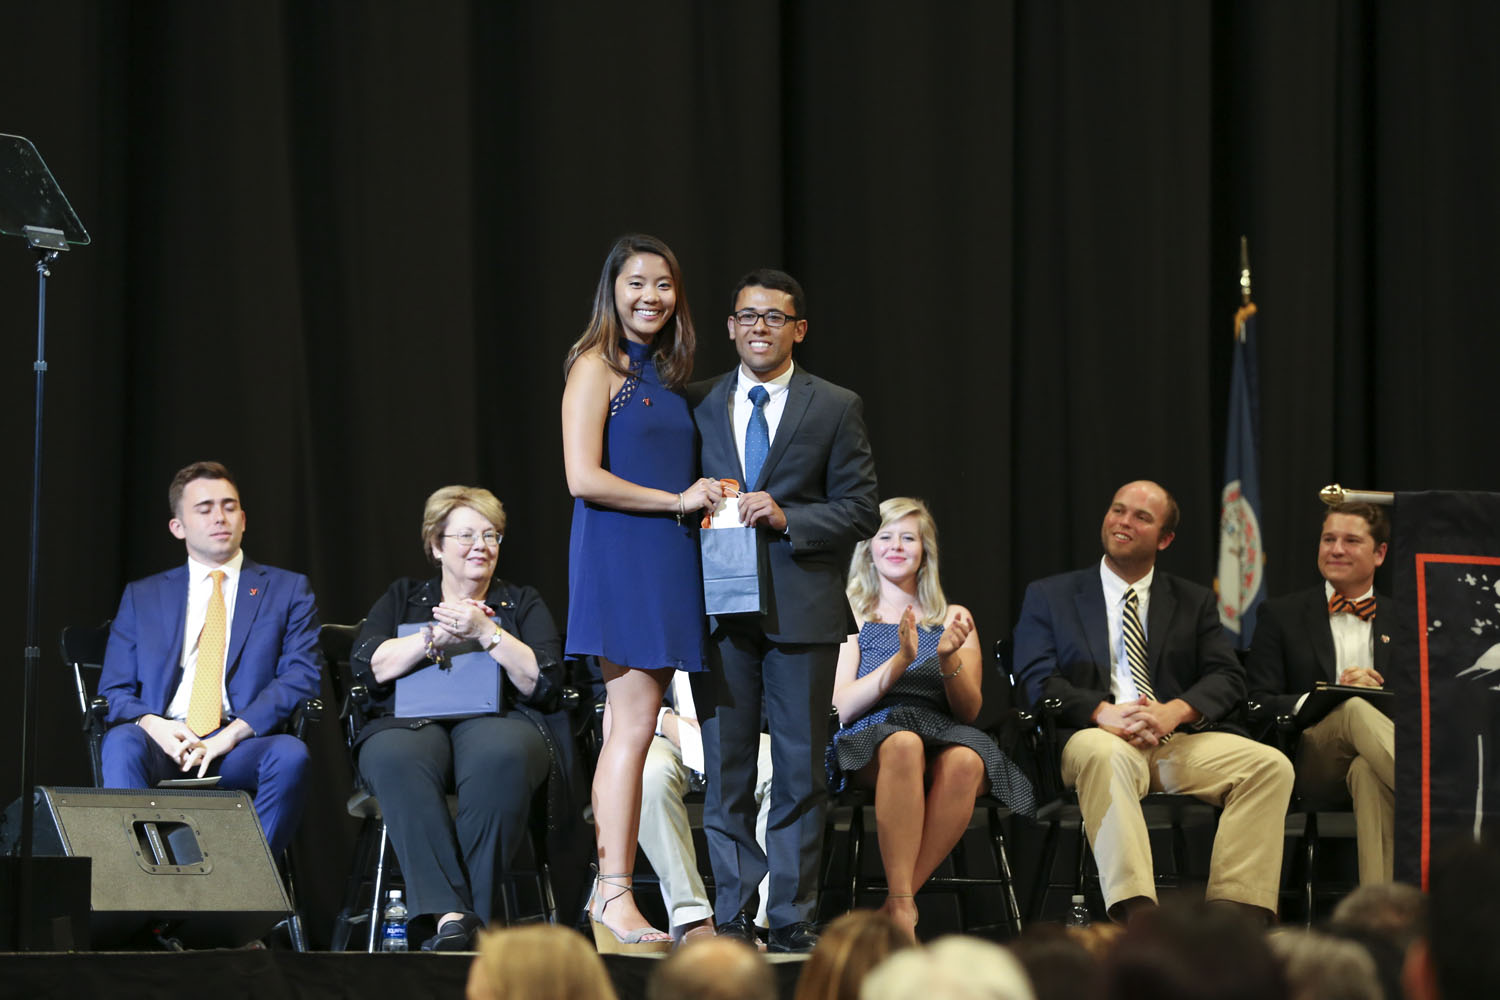 The Class of 2017, represented by trustee Ngan K. Pham, presented its Diamond Award to first-generation college student Mario J. Sukkar.